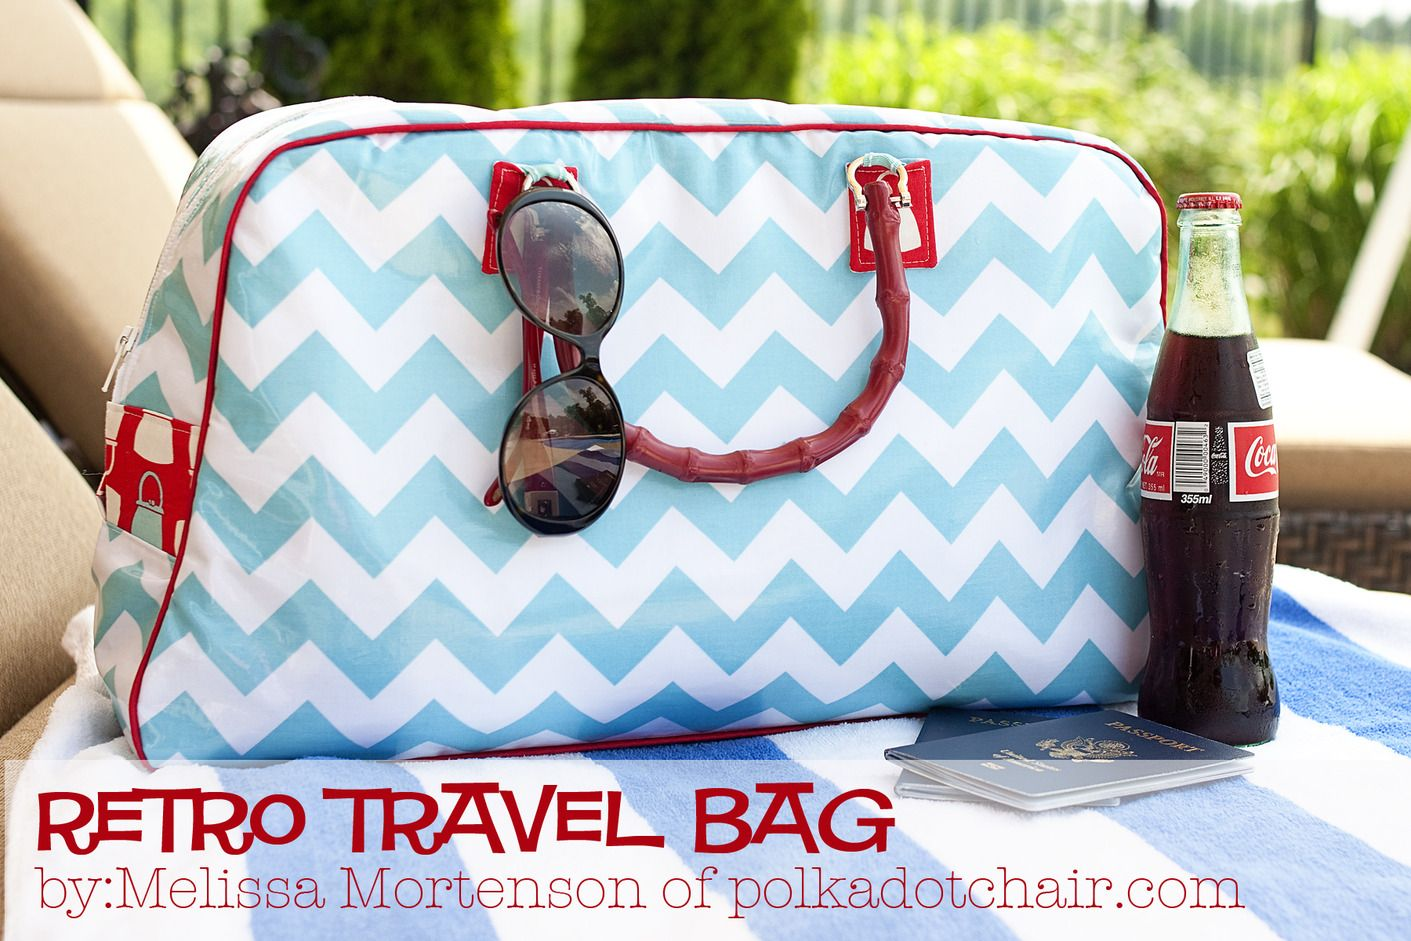 Cute travel bag pattern.